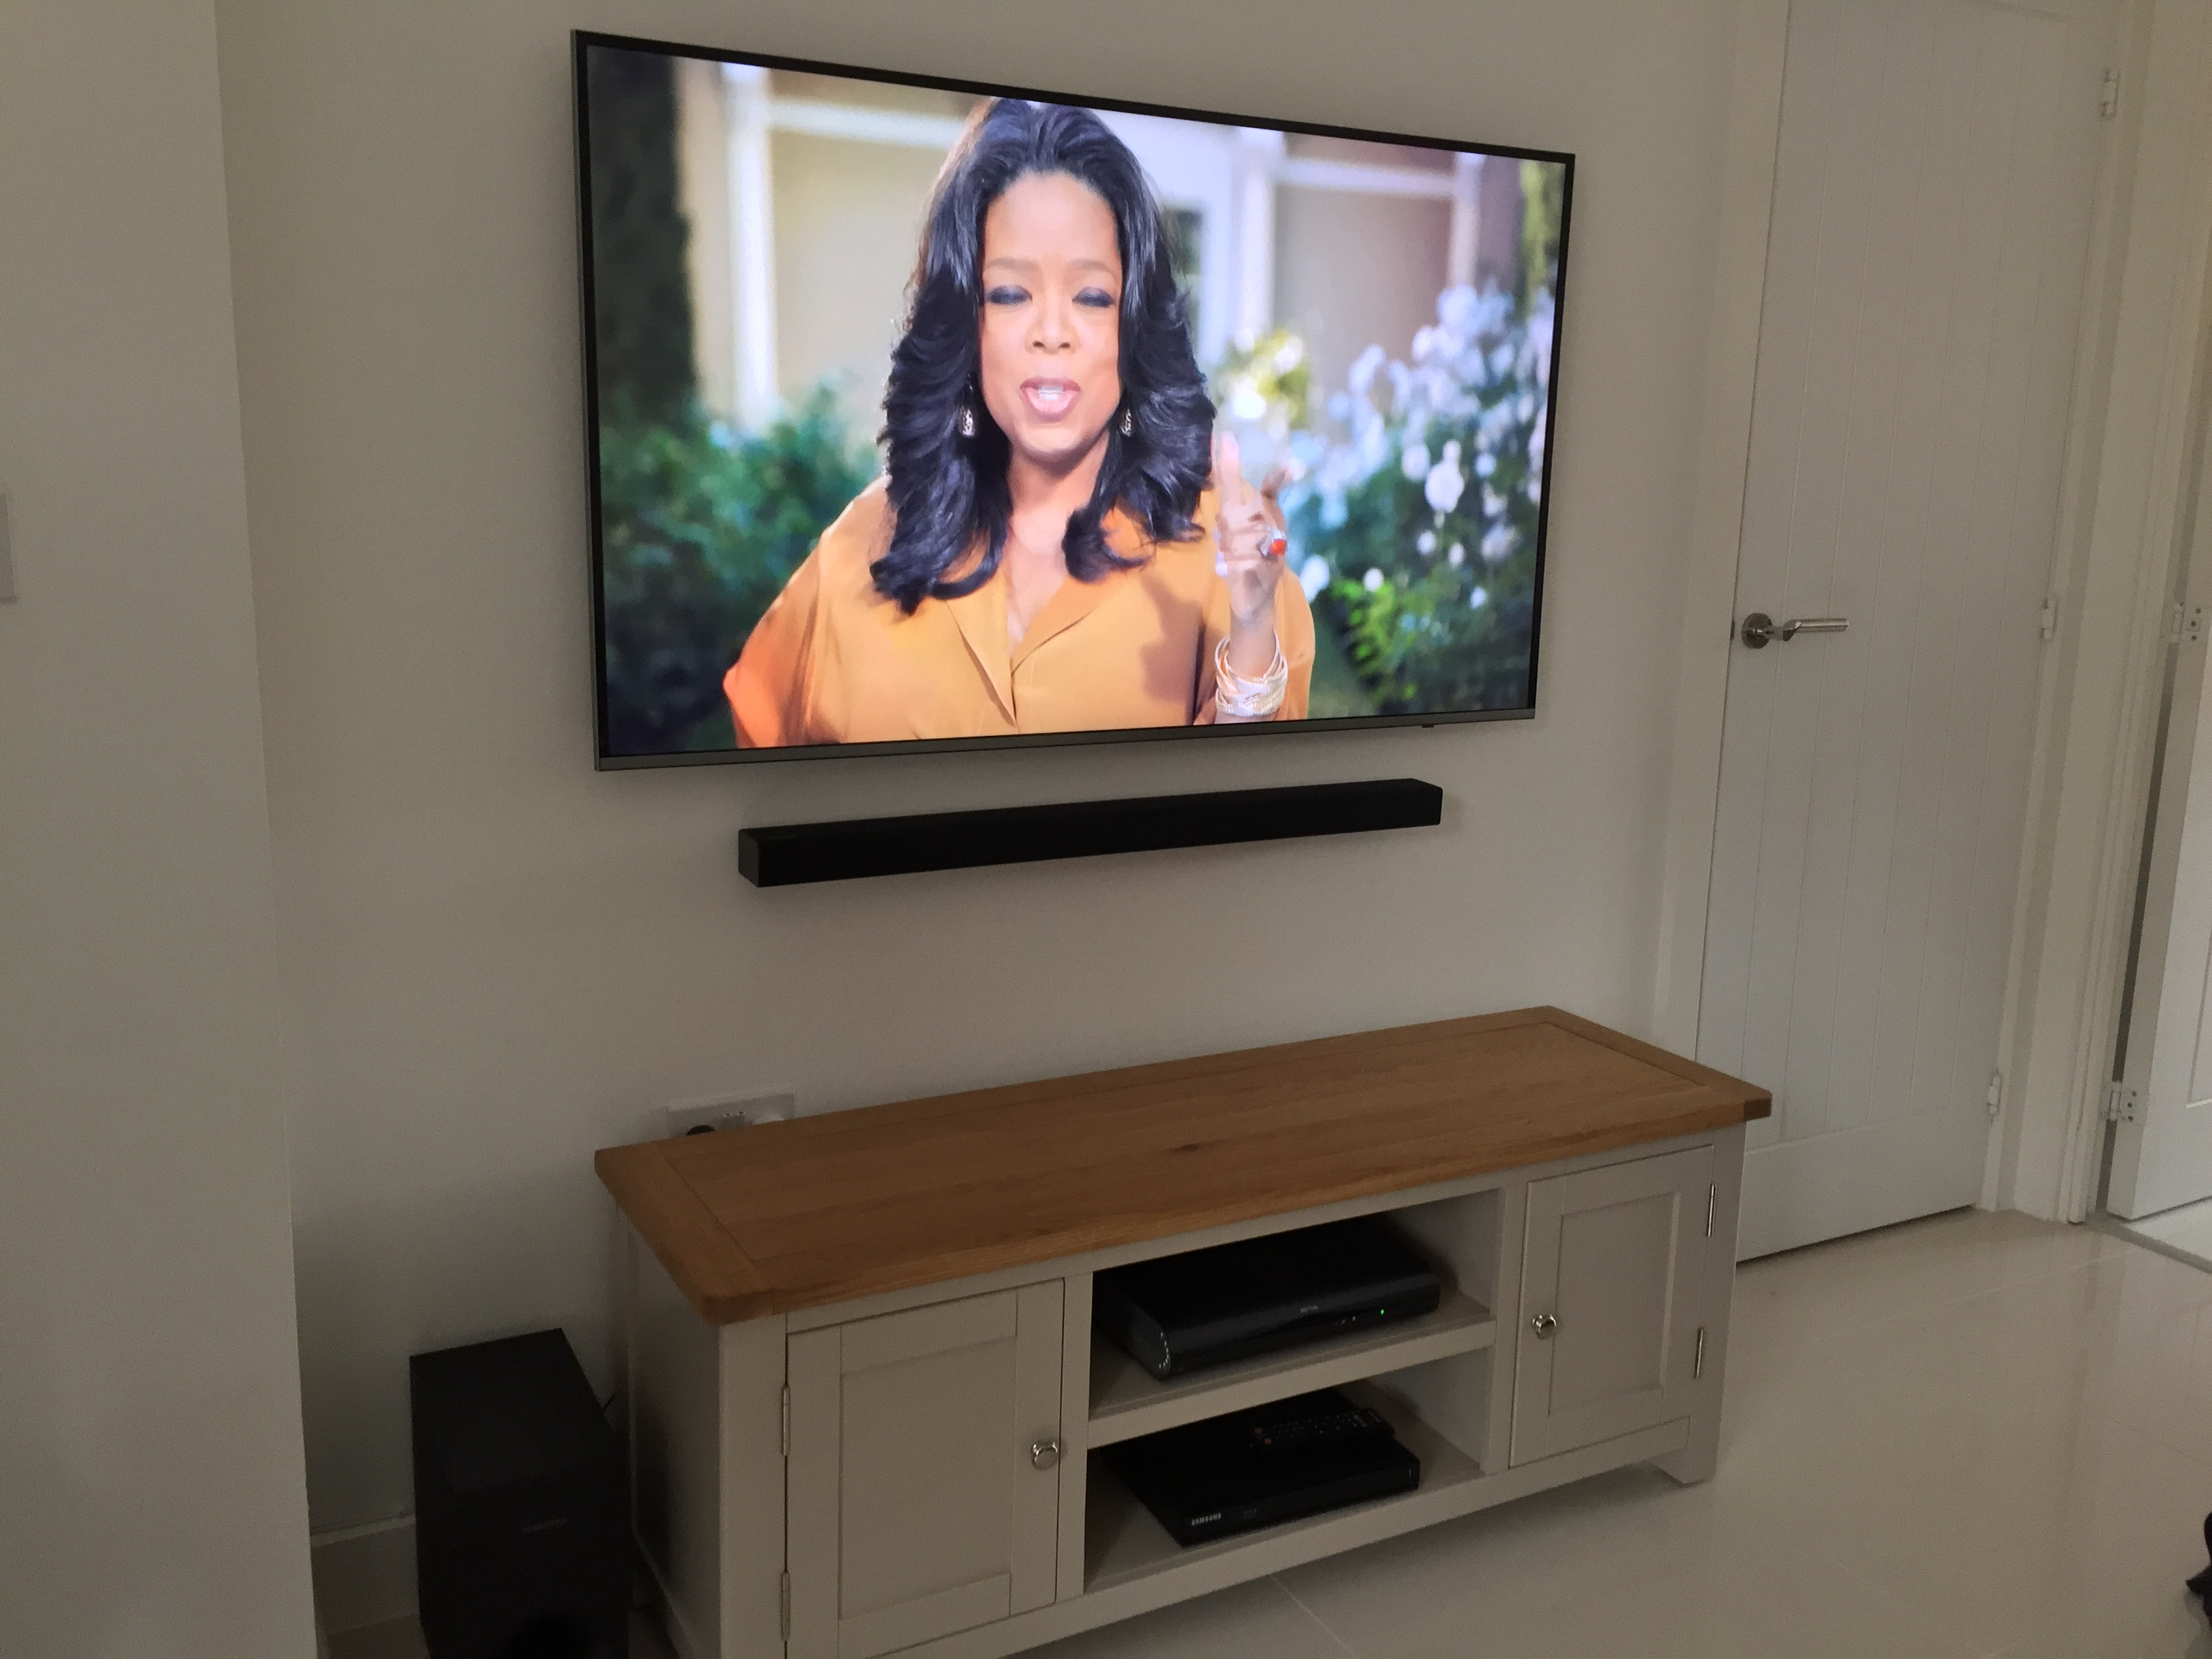 Tv Gallery Master Av Services Wiring Solutions Uk And Sound Bar Install In Epping Essex All Cables Were Chased Hidden Inside Wall